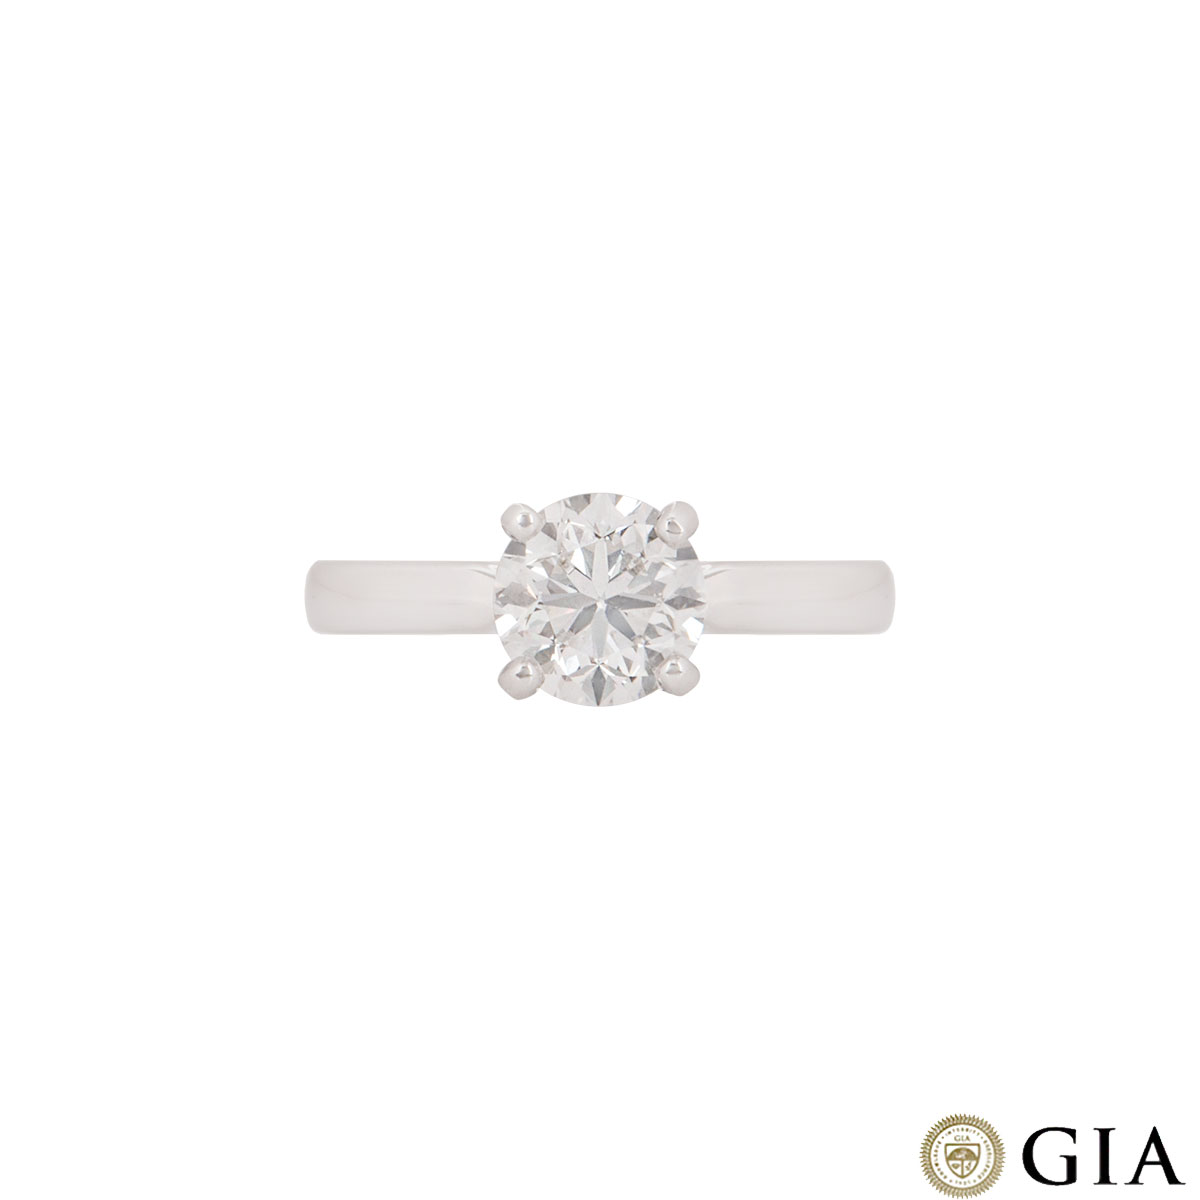 White Gold Round Brilliant Cut Diamond Ring 1.52ct G/VVS2